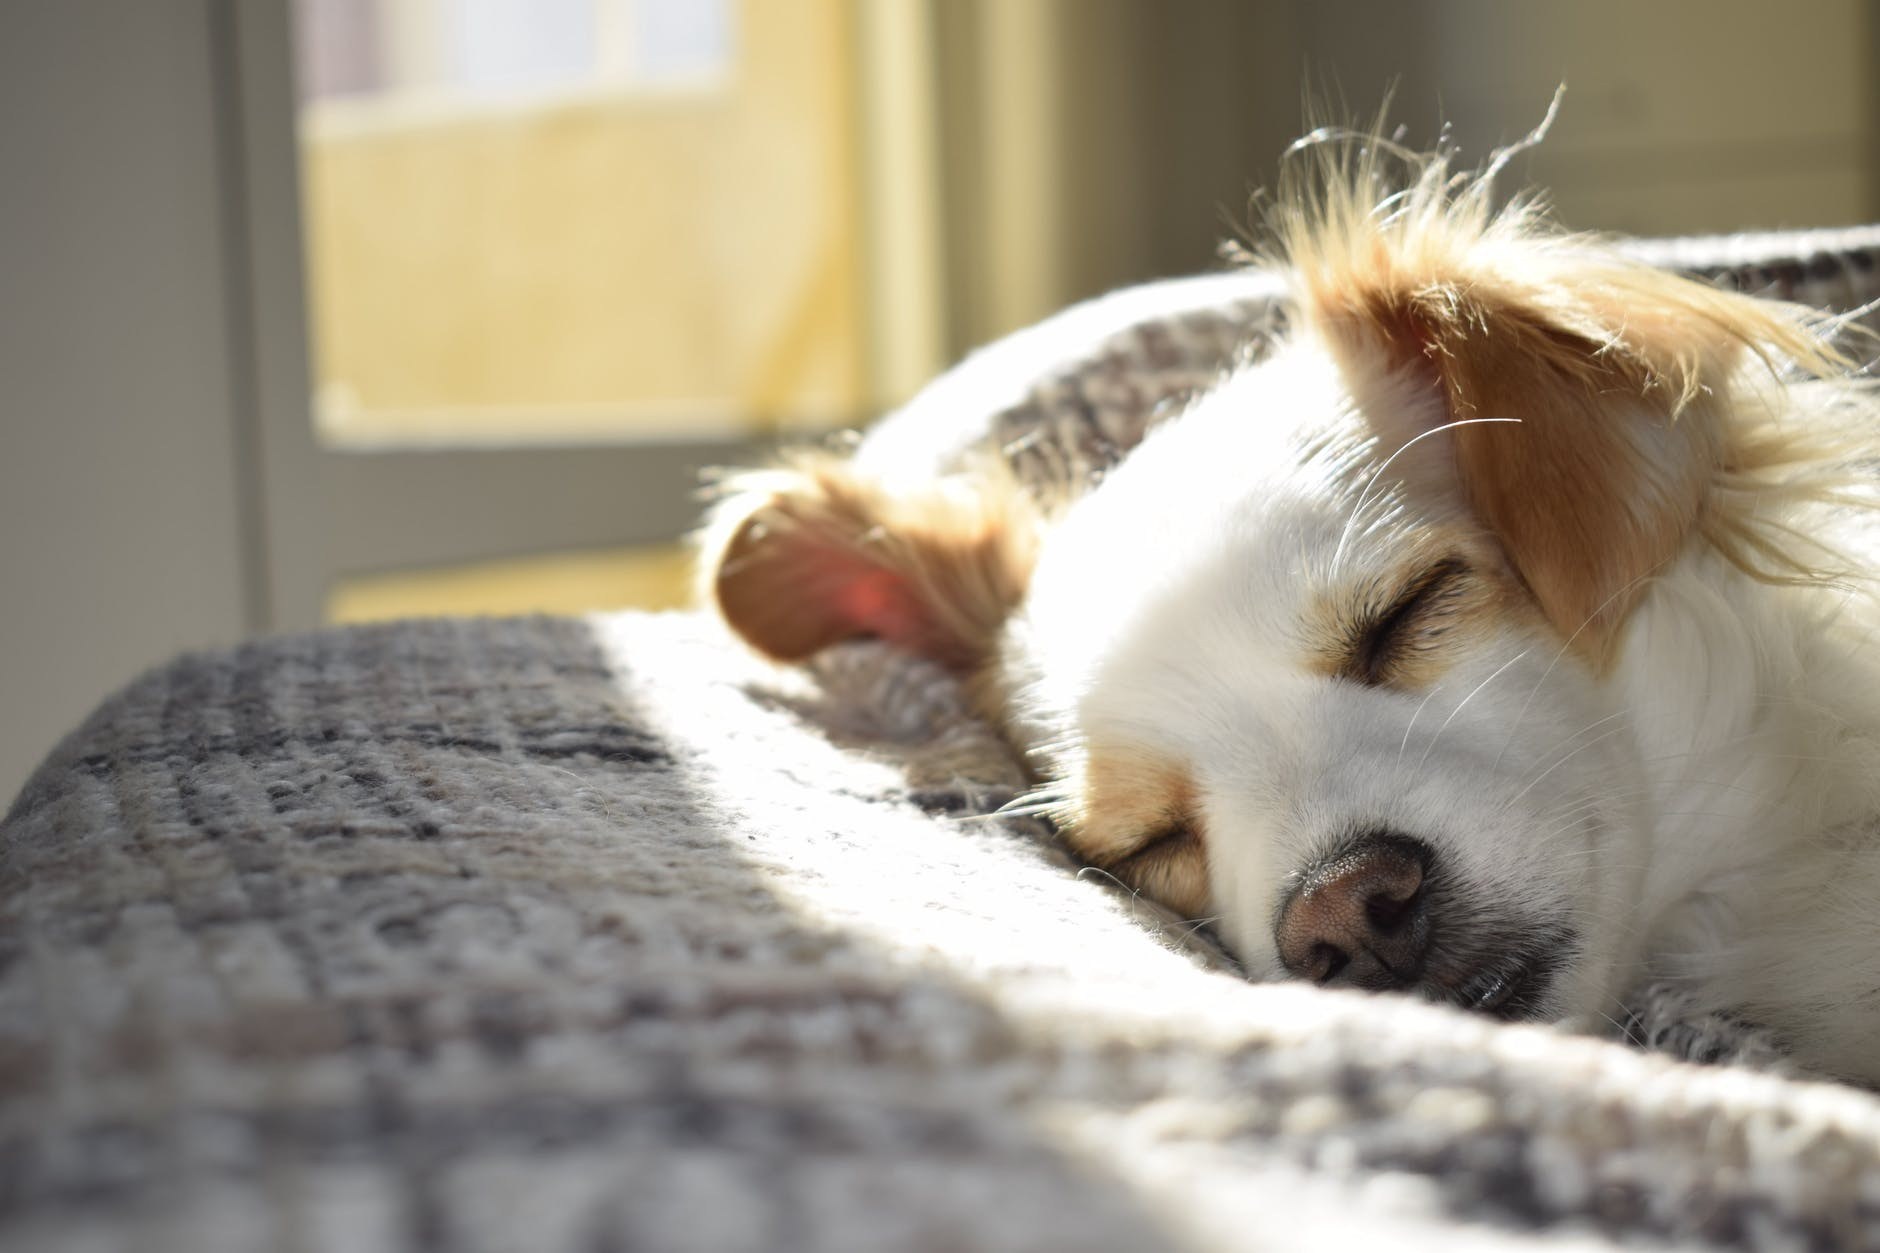 closeup photography of adult short coated tan and white dog sleeping on gray textile at daytime